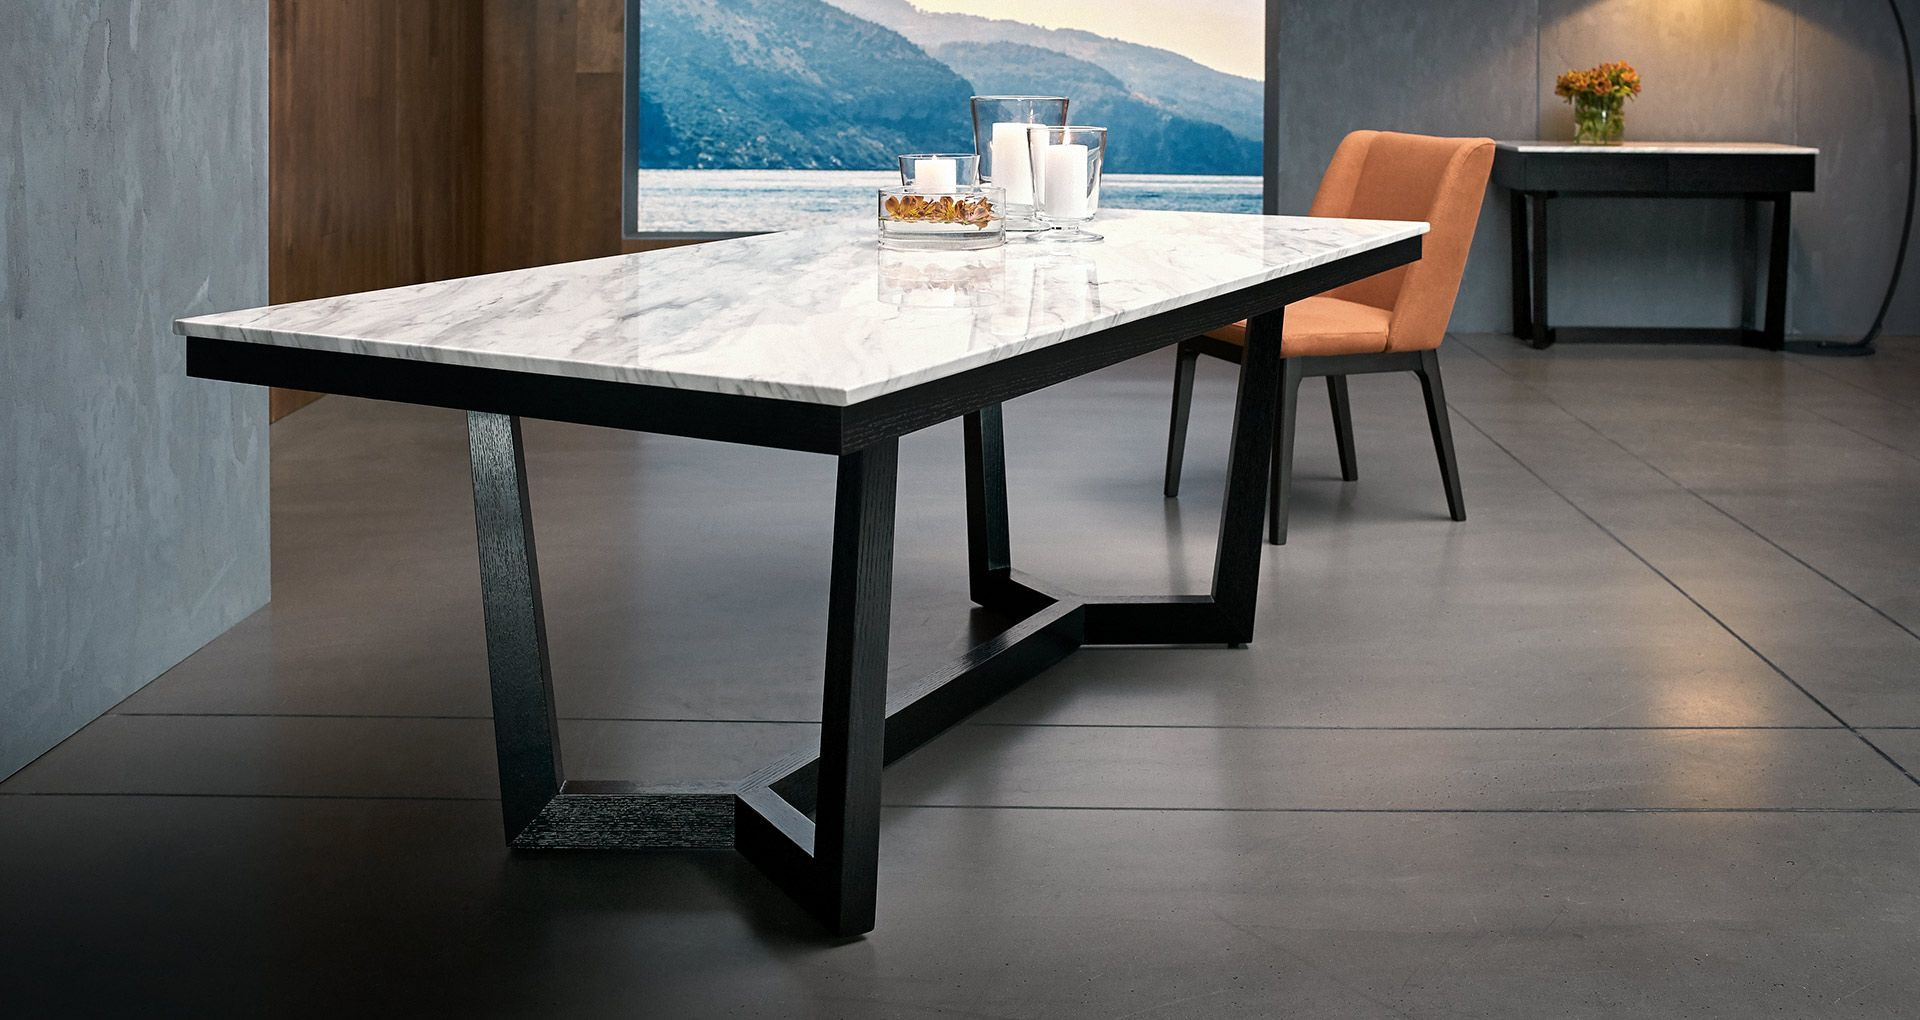 Marble Dining Table Provence Nick Scali Nick Scali Dining Table Marble Marble Top Dining Table Dining Table [ 1020 x 1920 Pixel ]